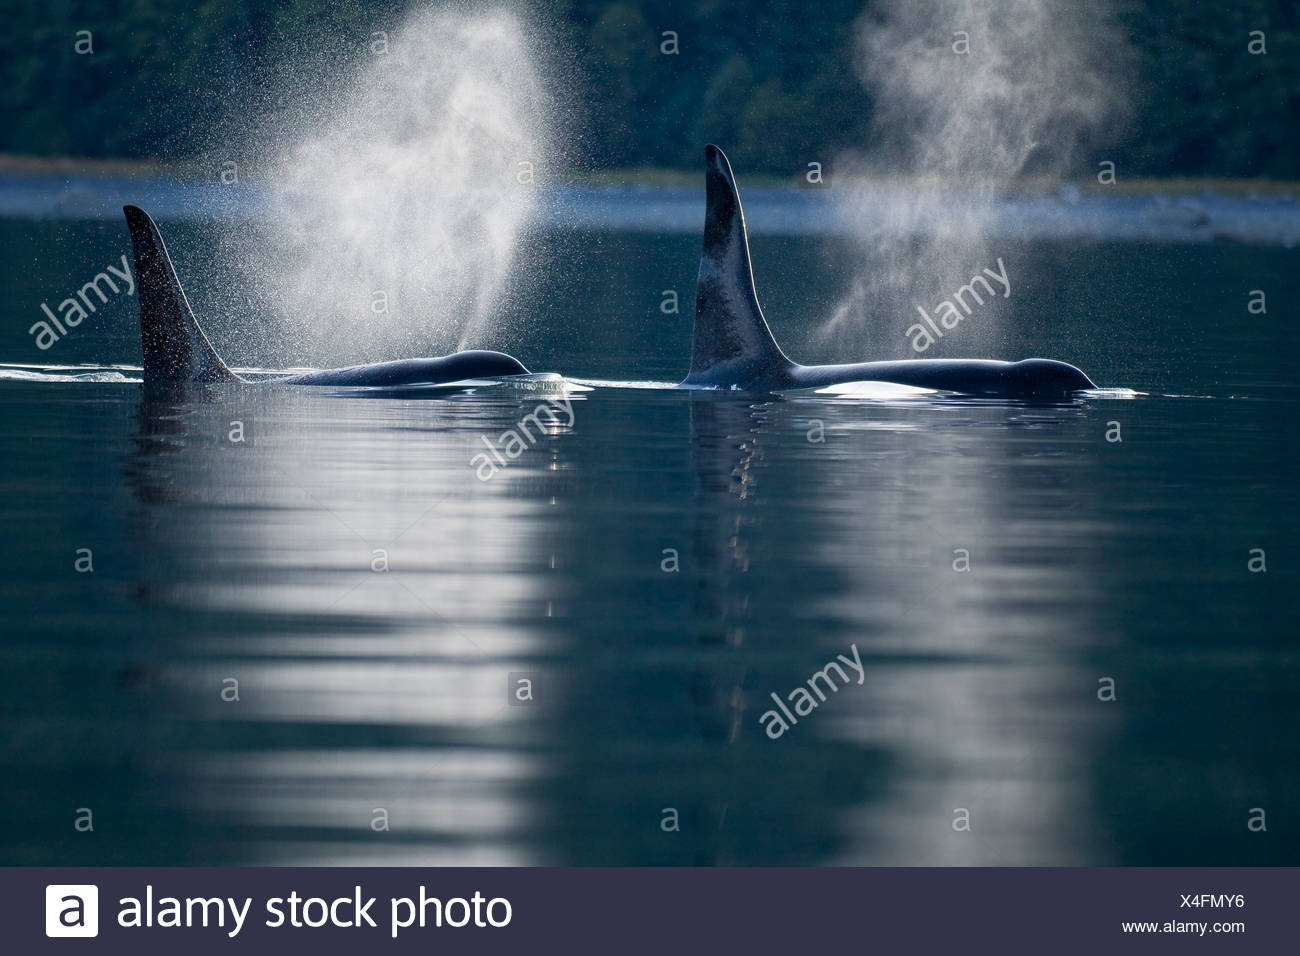 Orca Whales exhale (blows) as they surfaces in Alaska's Inside Passage, Alaska - Stock Image